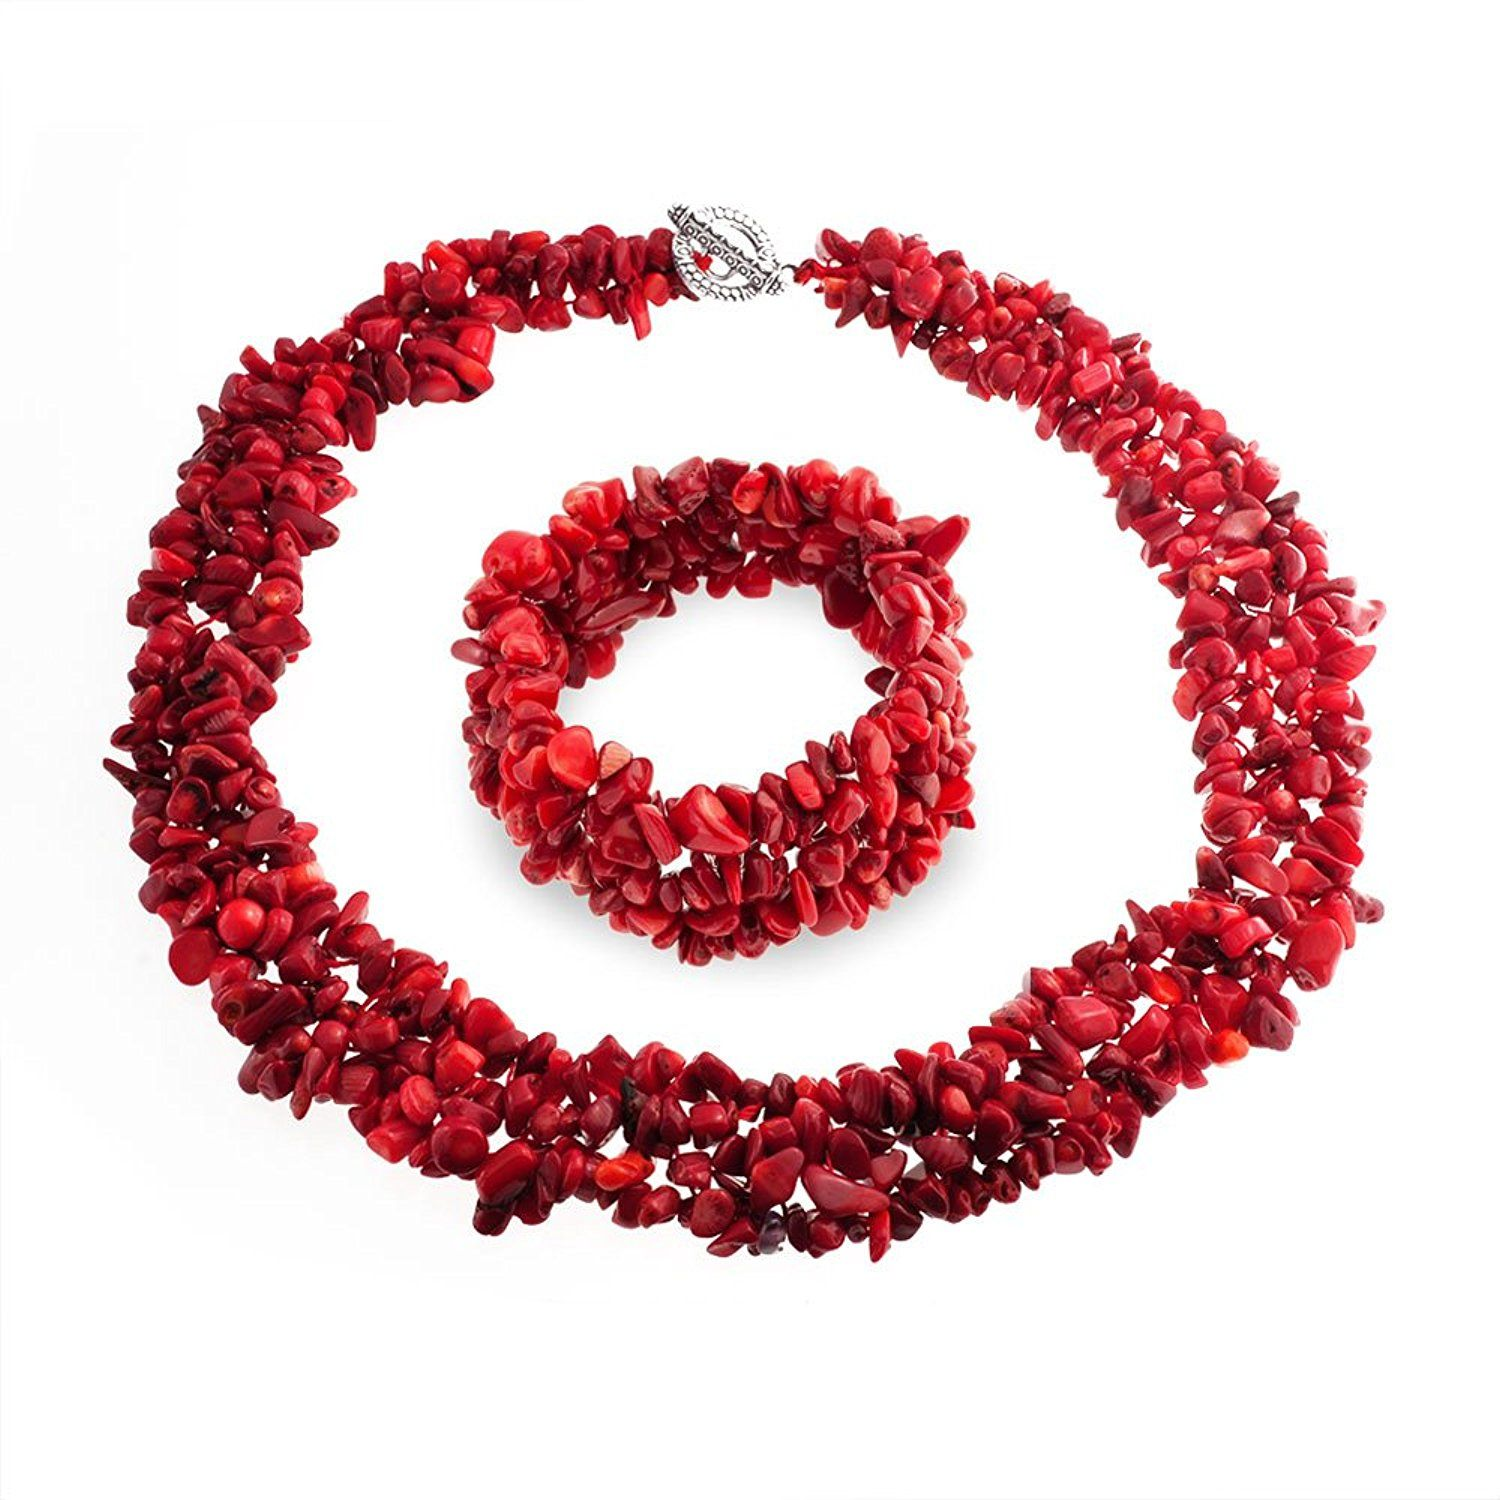 Bling Jewelry Multi Strands Dyed Red Coral Chips Chunky Silver Plated Necklace 18 Inches WAGNHF